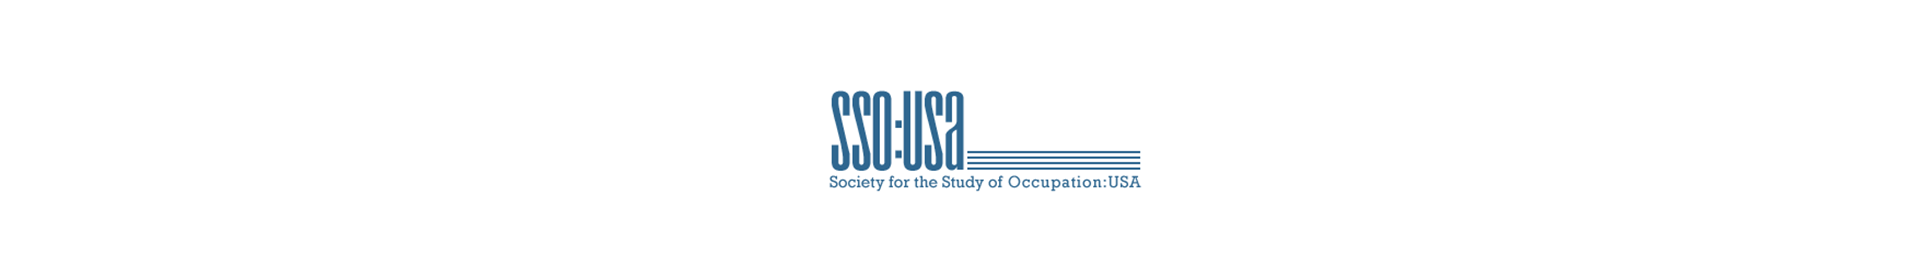 SSO:USA Society for the Study of Occupation